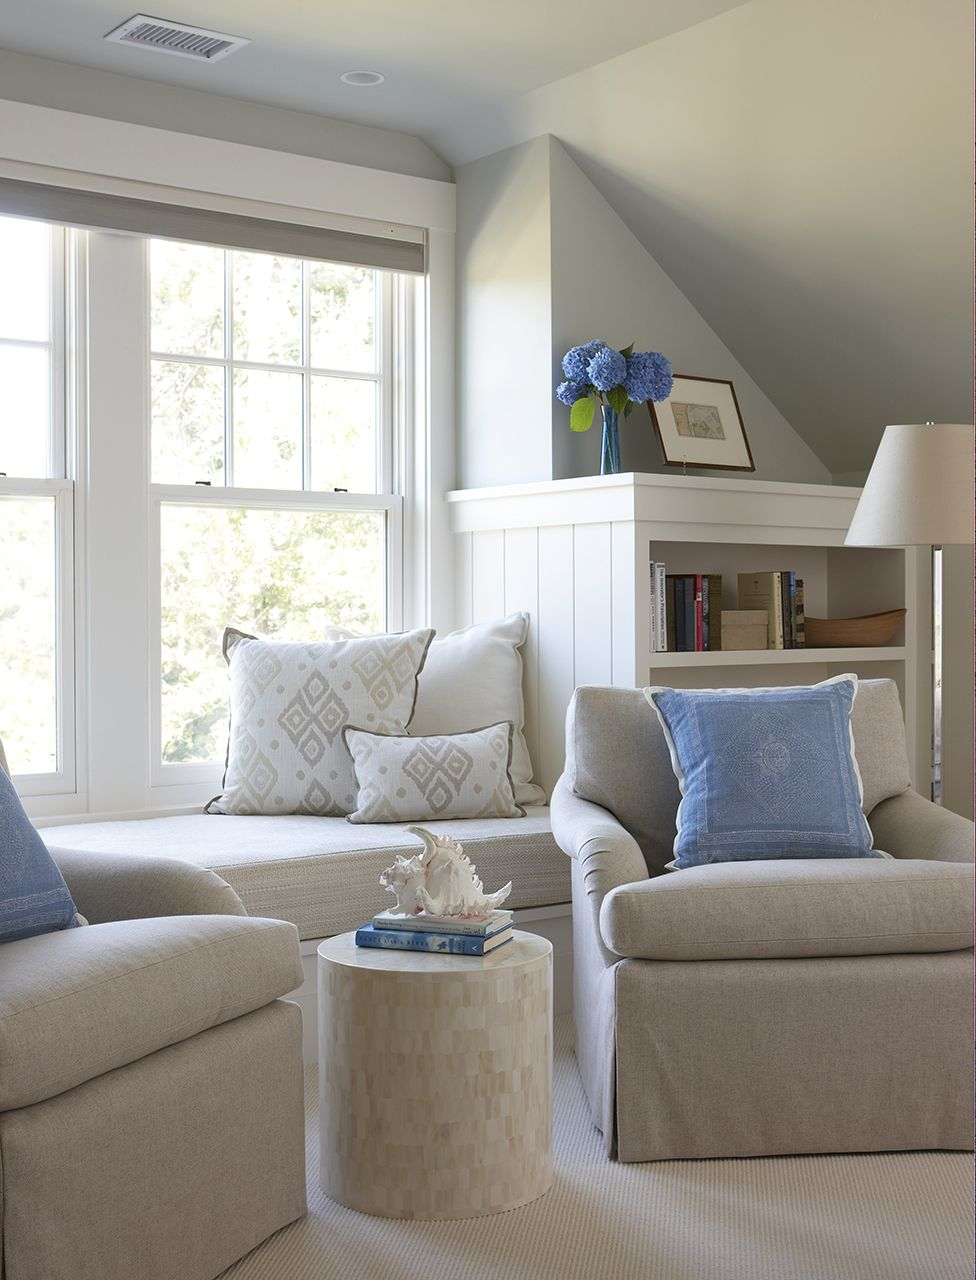 cottage style furniture living room with window seat   Janine Dowling Interior Design - Transitional Portfolio ...